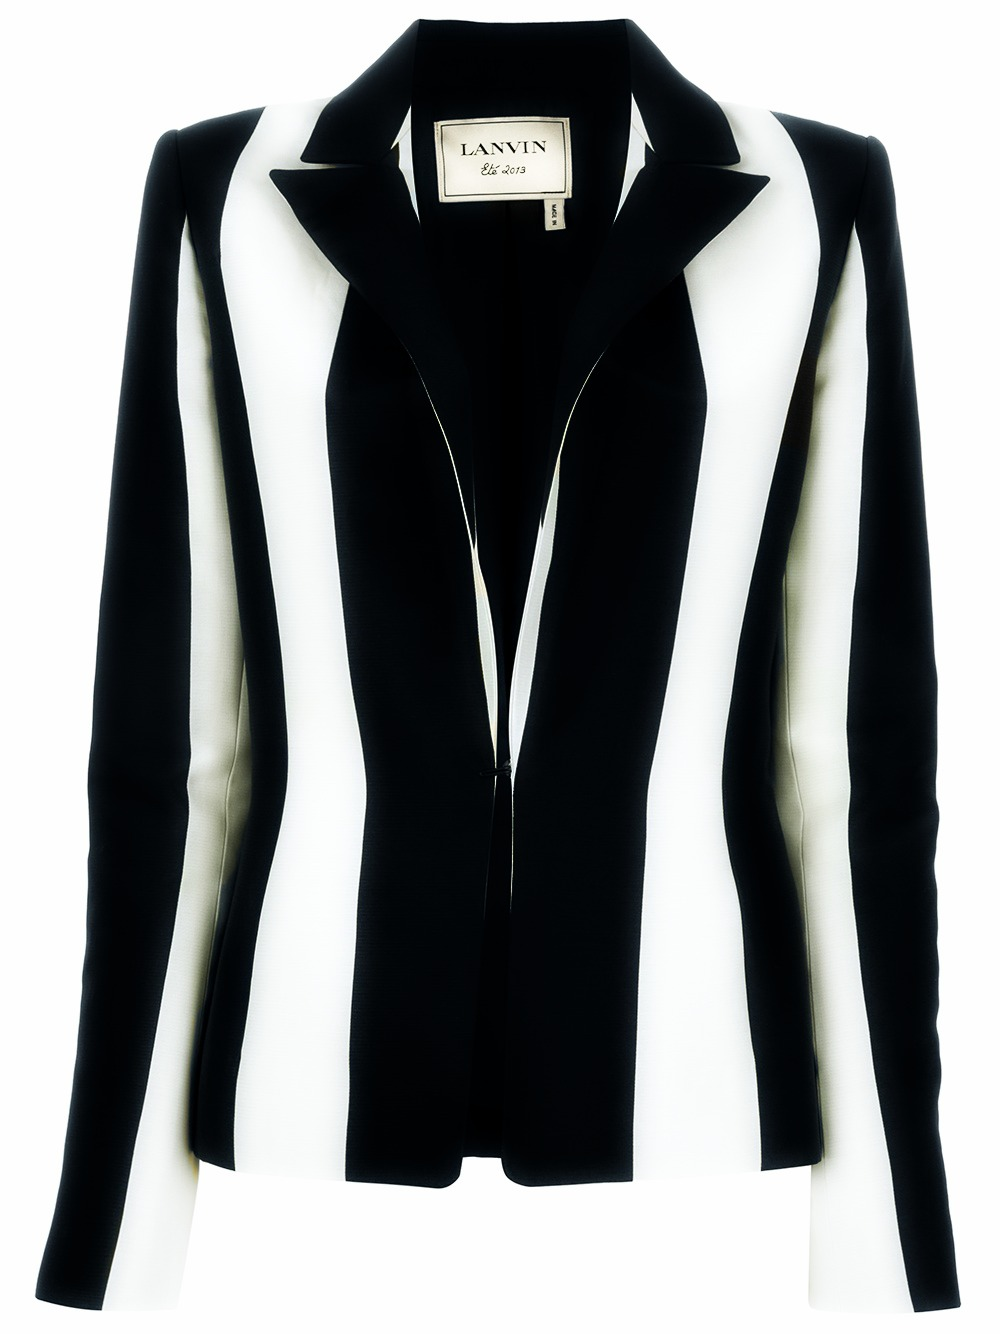 Lanvin Striped Blazer Price: $2,83 Farfetch.com